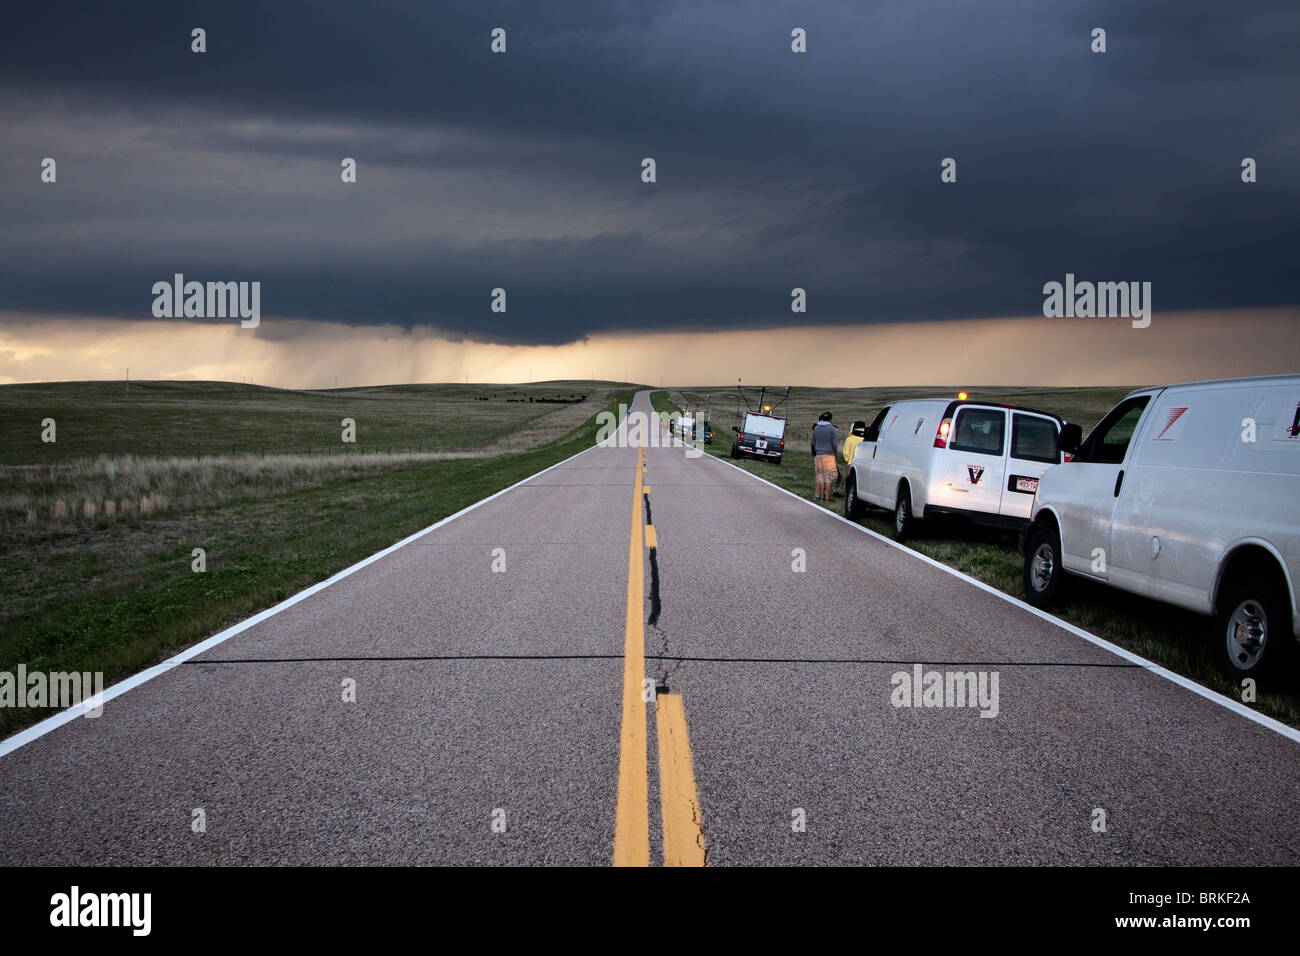 Tornado chasers and scientists participating in Project Vortex 2 in rural Wyoming, May 21, 2010. - Stock Image